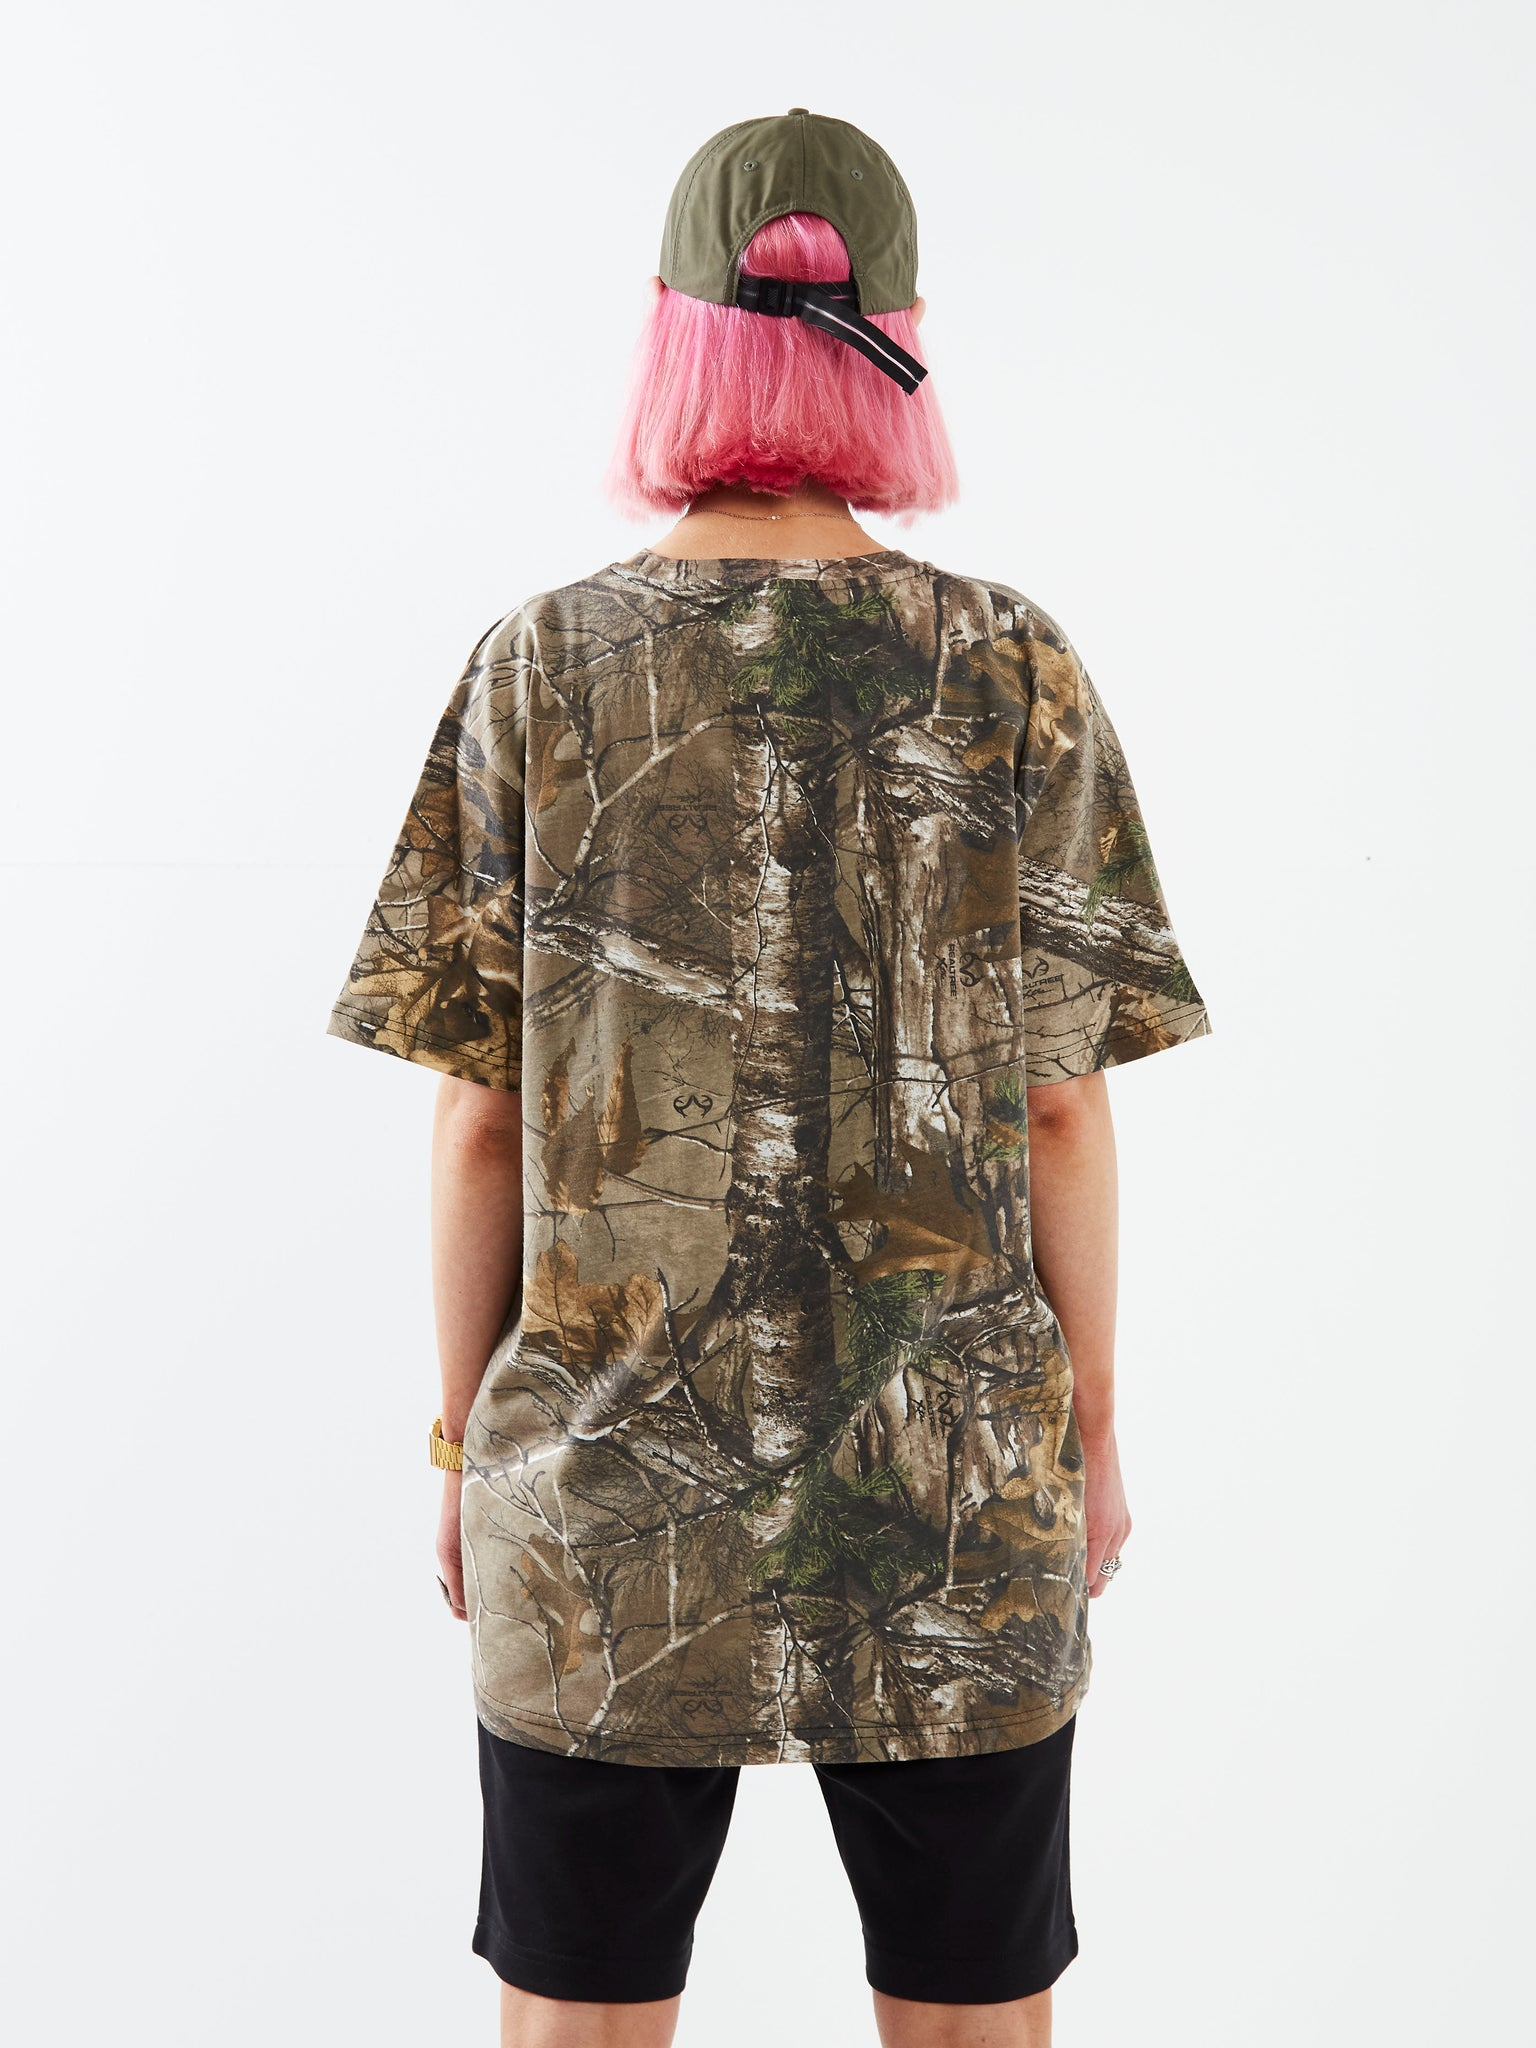 Keep in Line Camo T-shirt